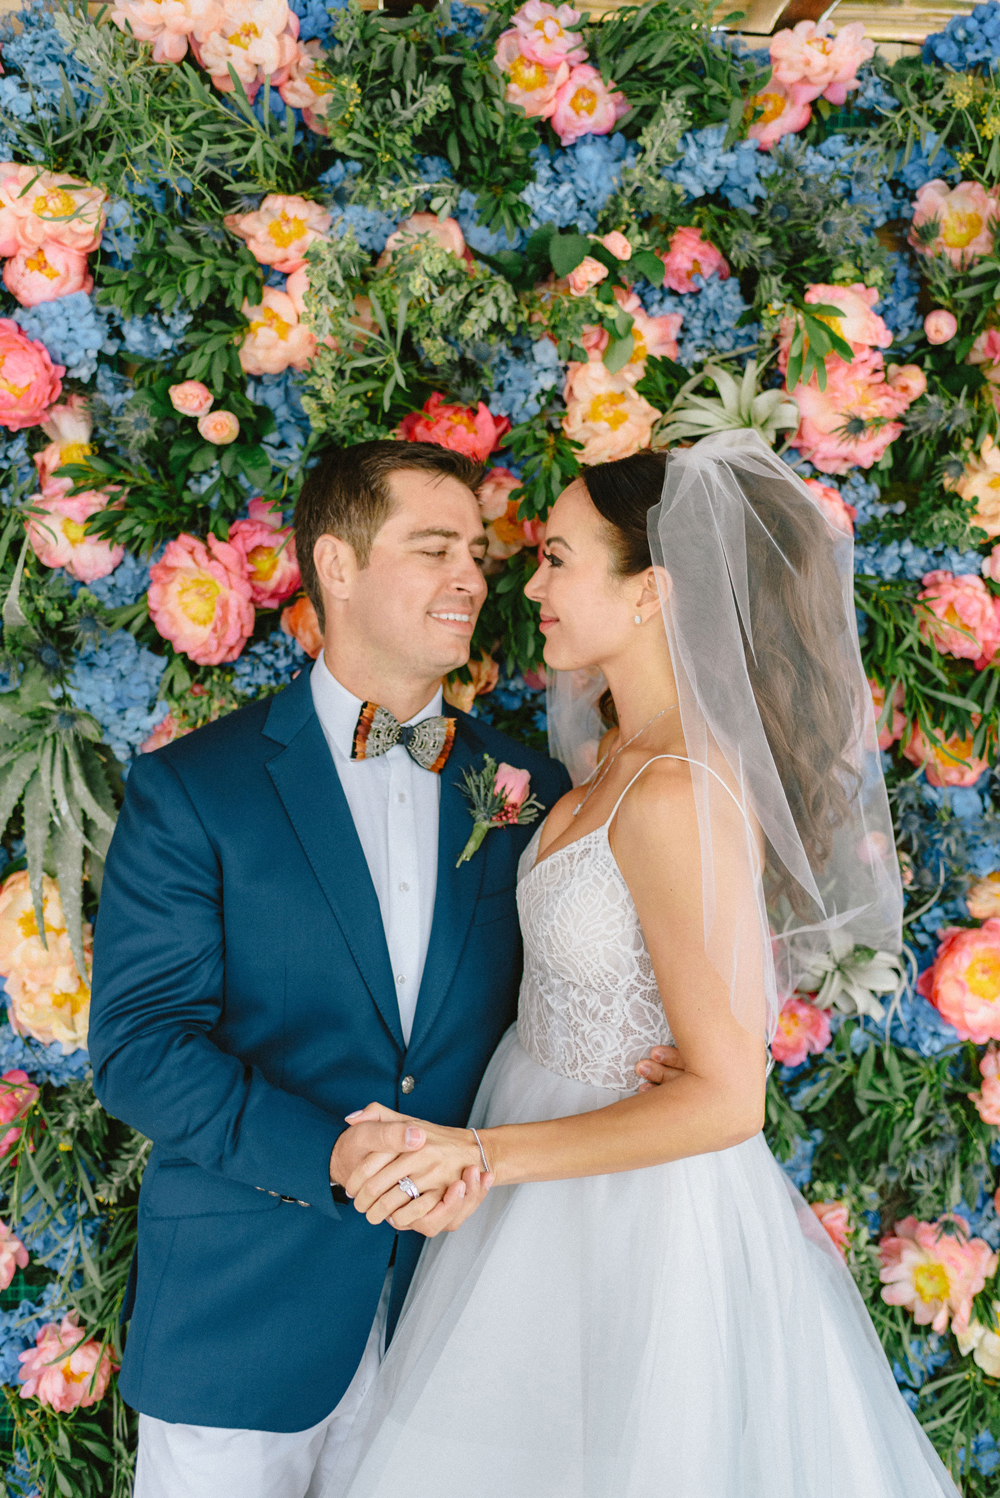 bride and groom standing in front of wedding plant wall of multi-colored flowers